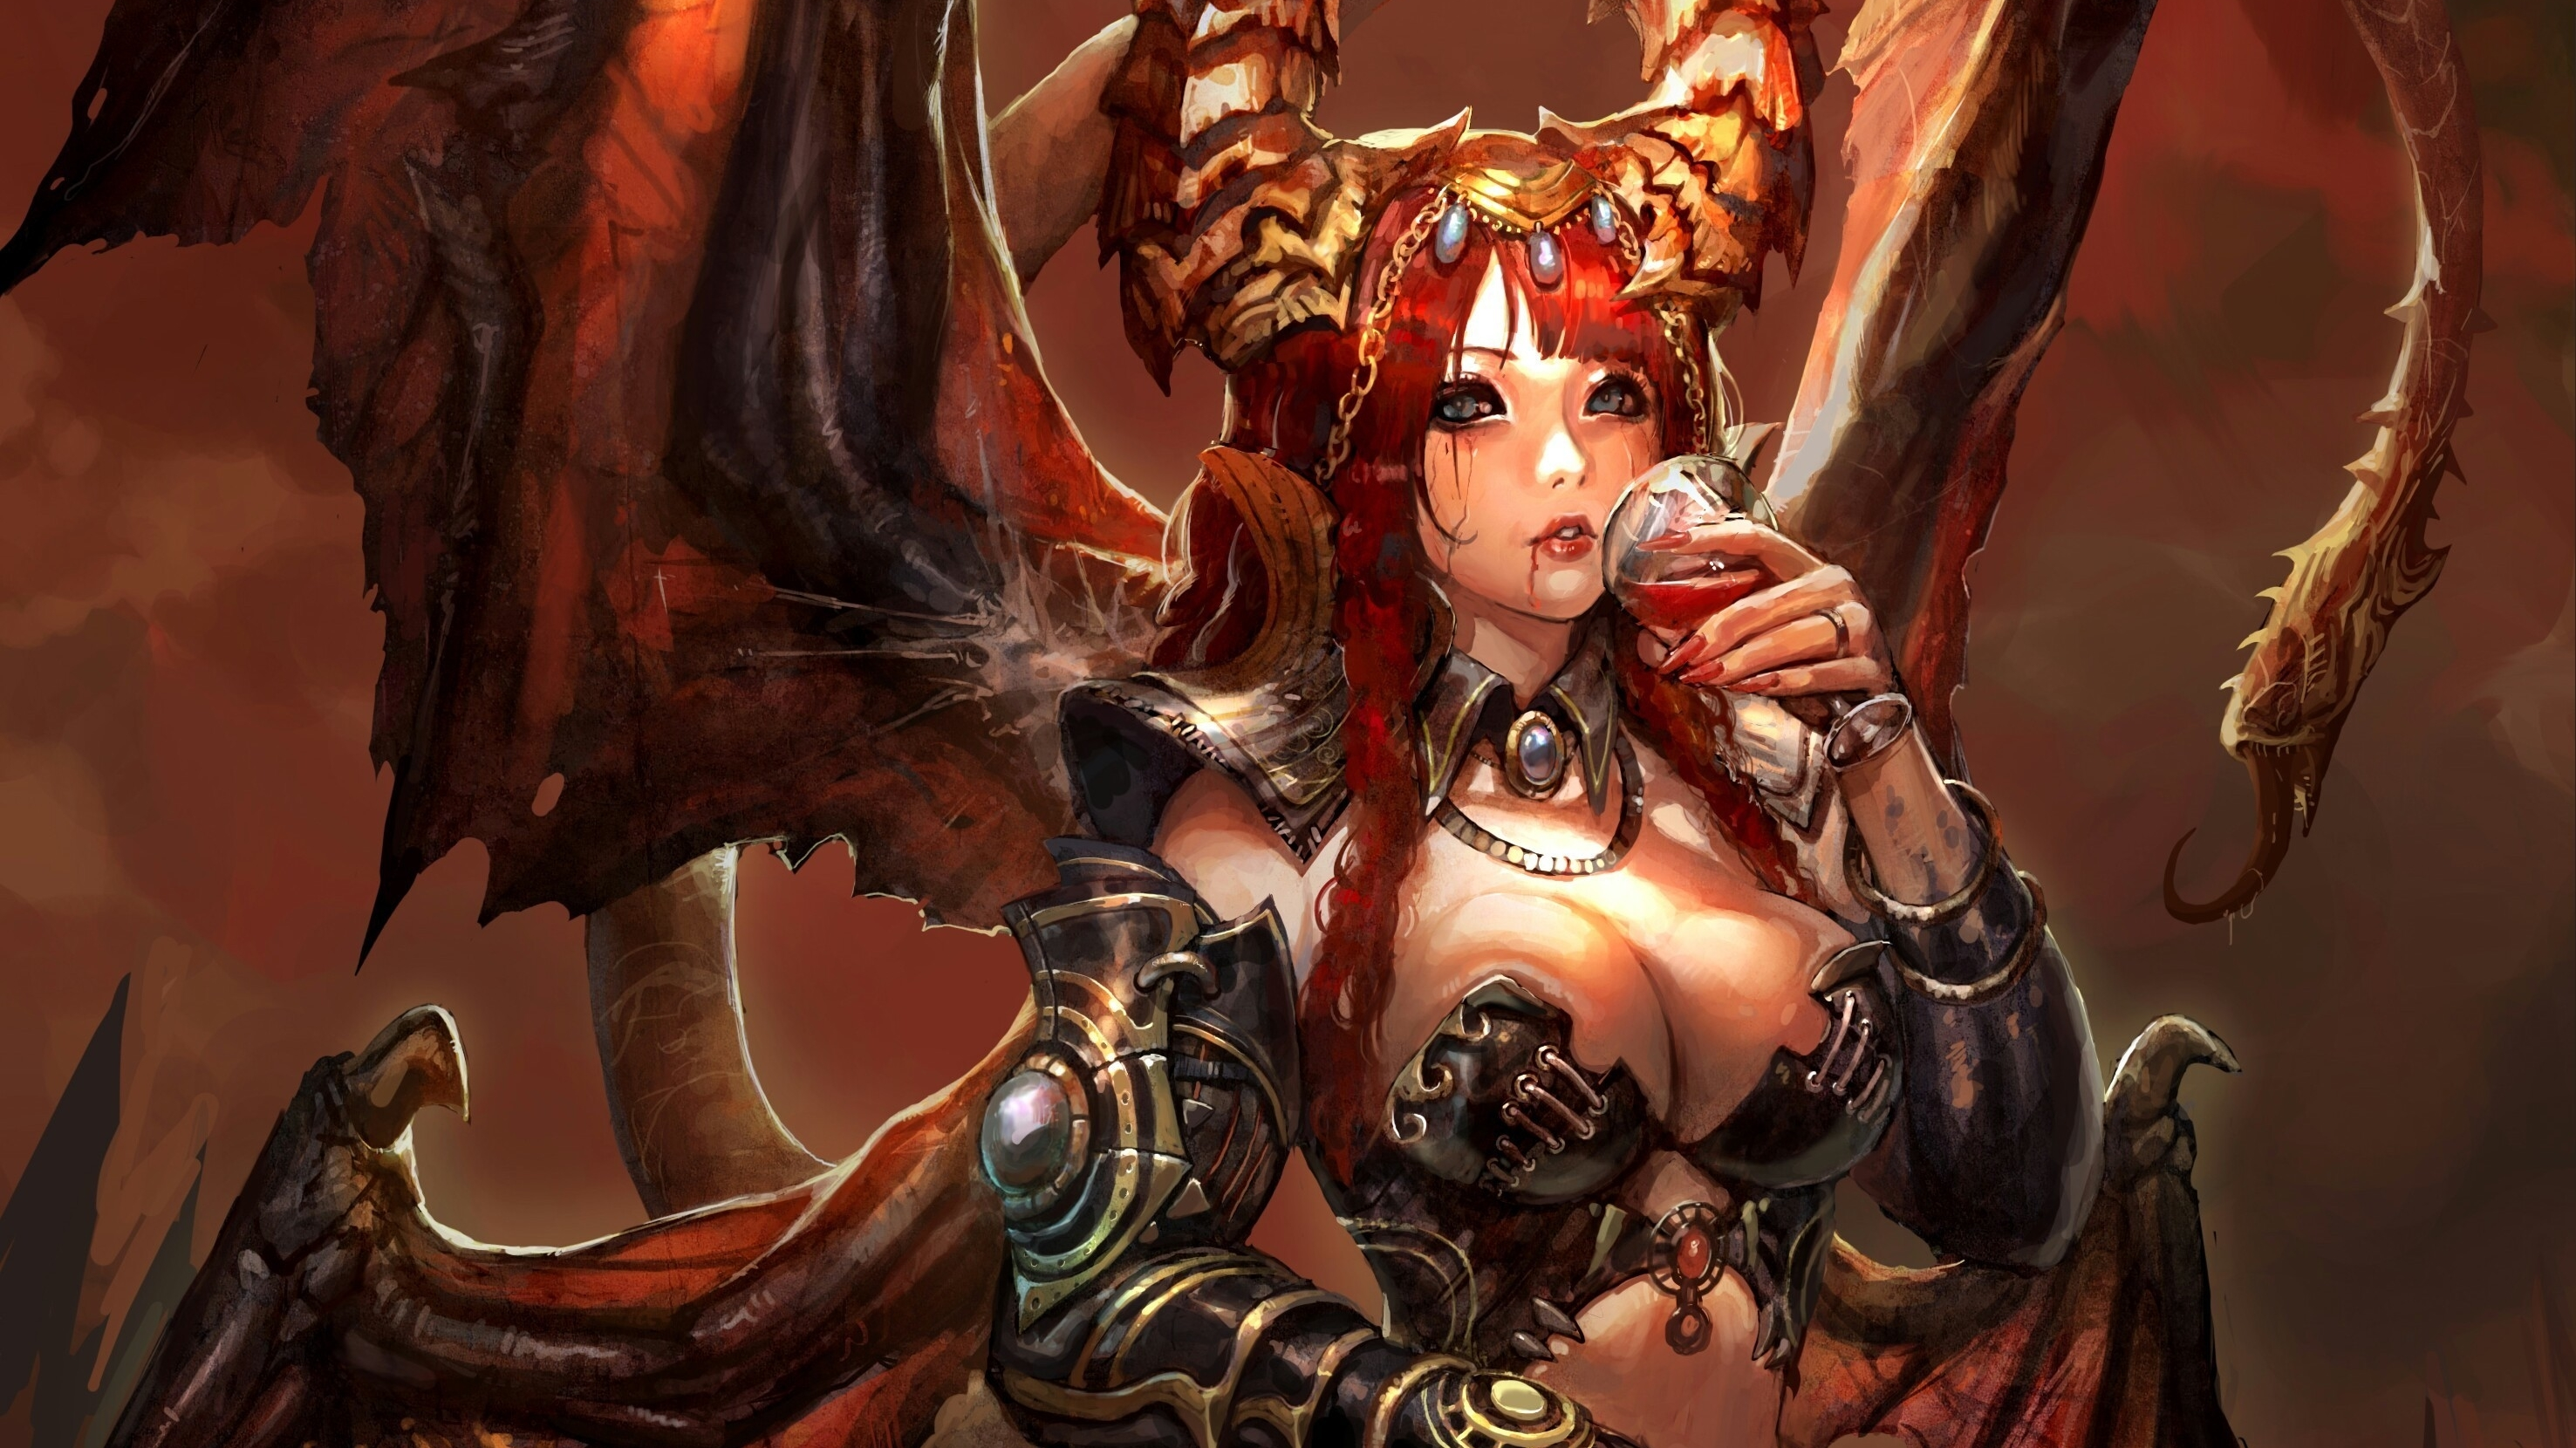 Winged succubus erotic fantasy porncraft gallery